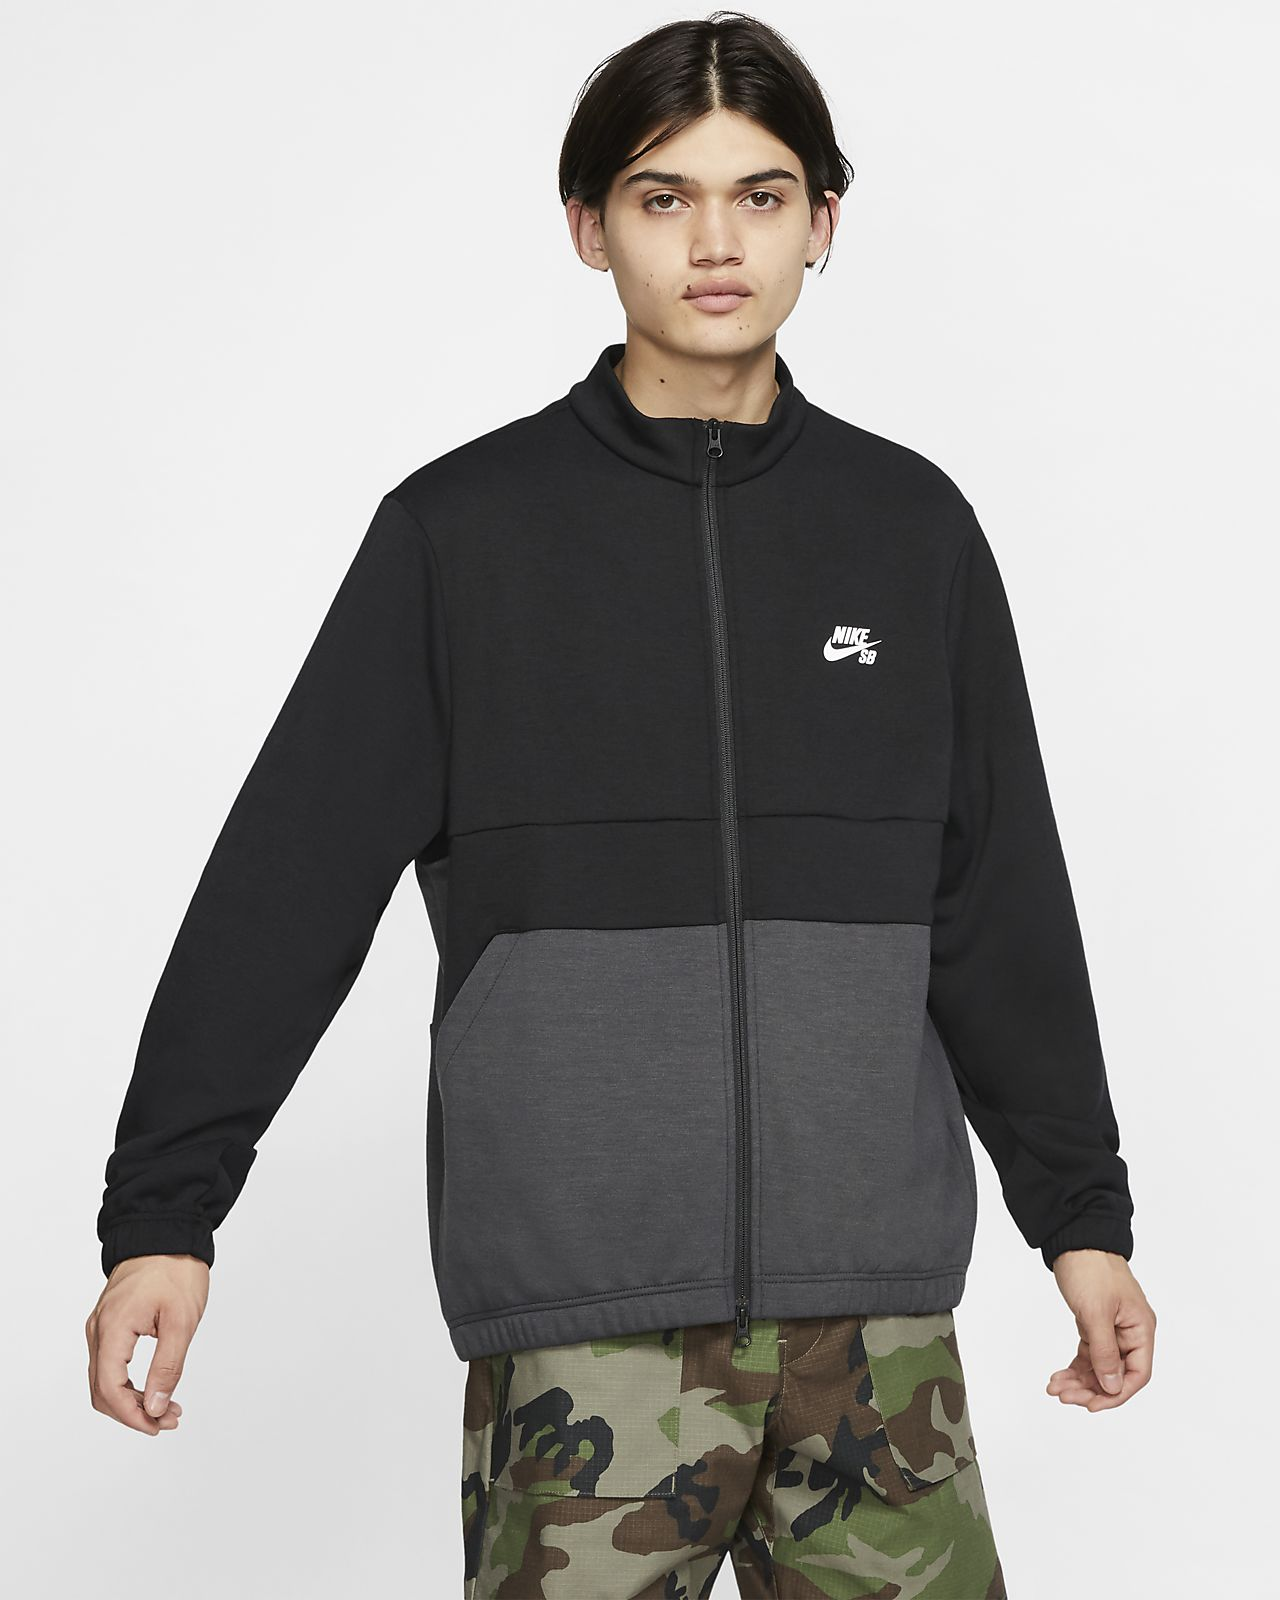 Veste de survêtement de skateboard Nike SB Dri-FIT